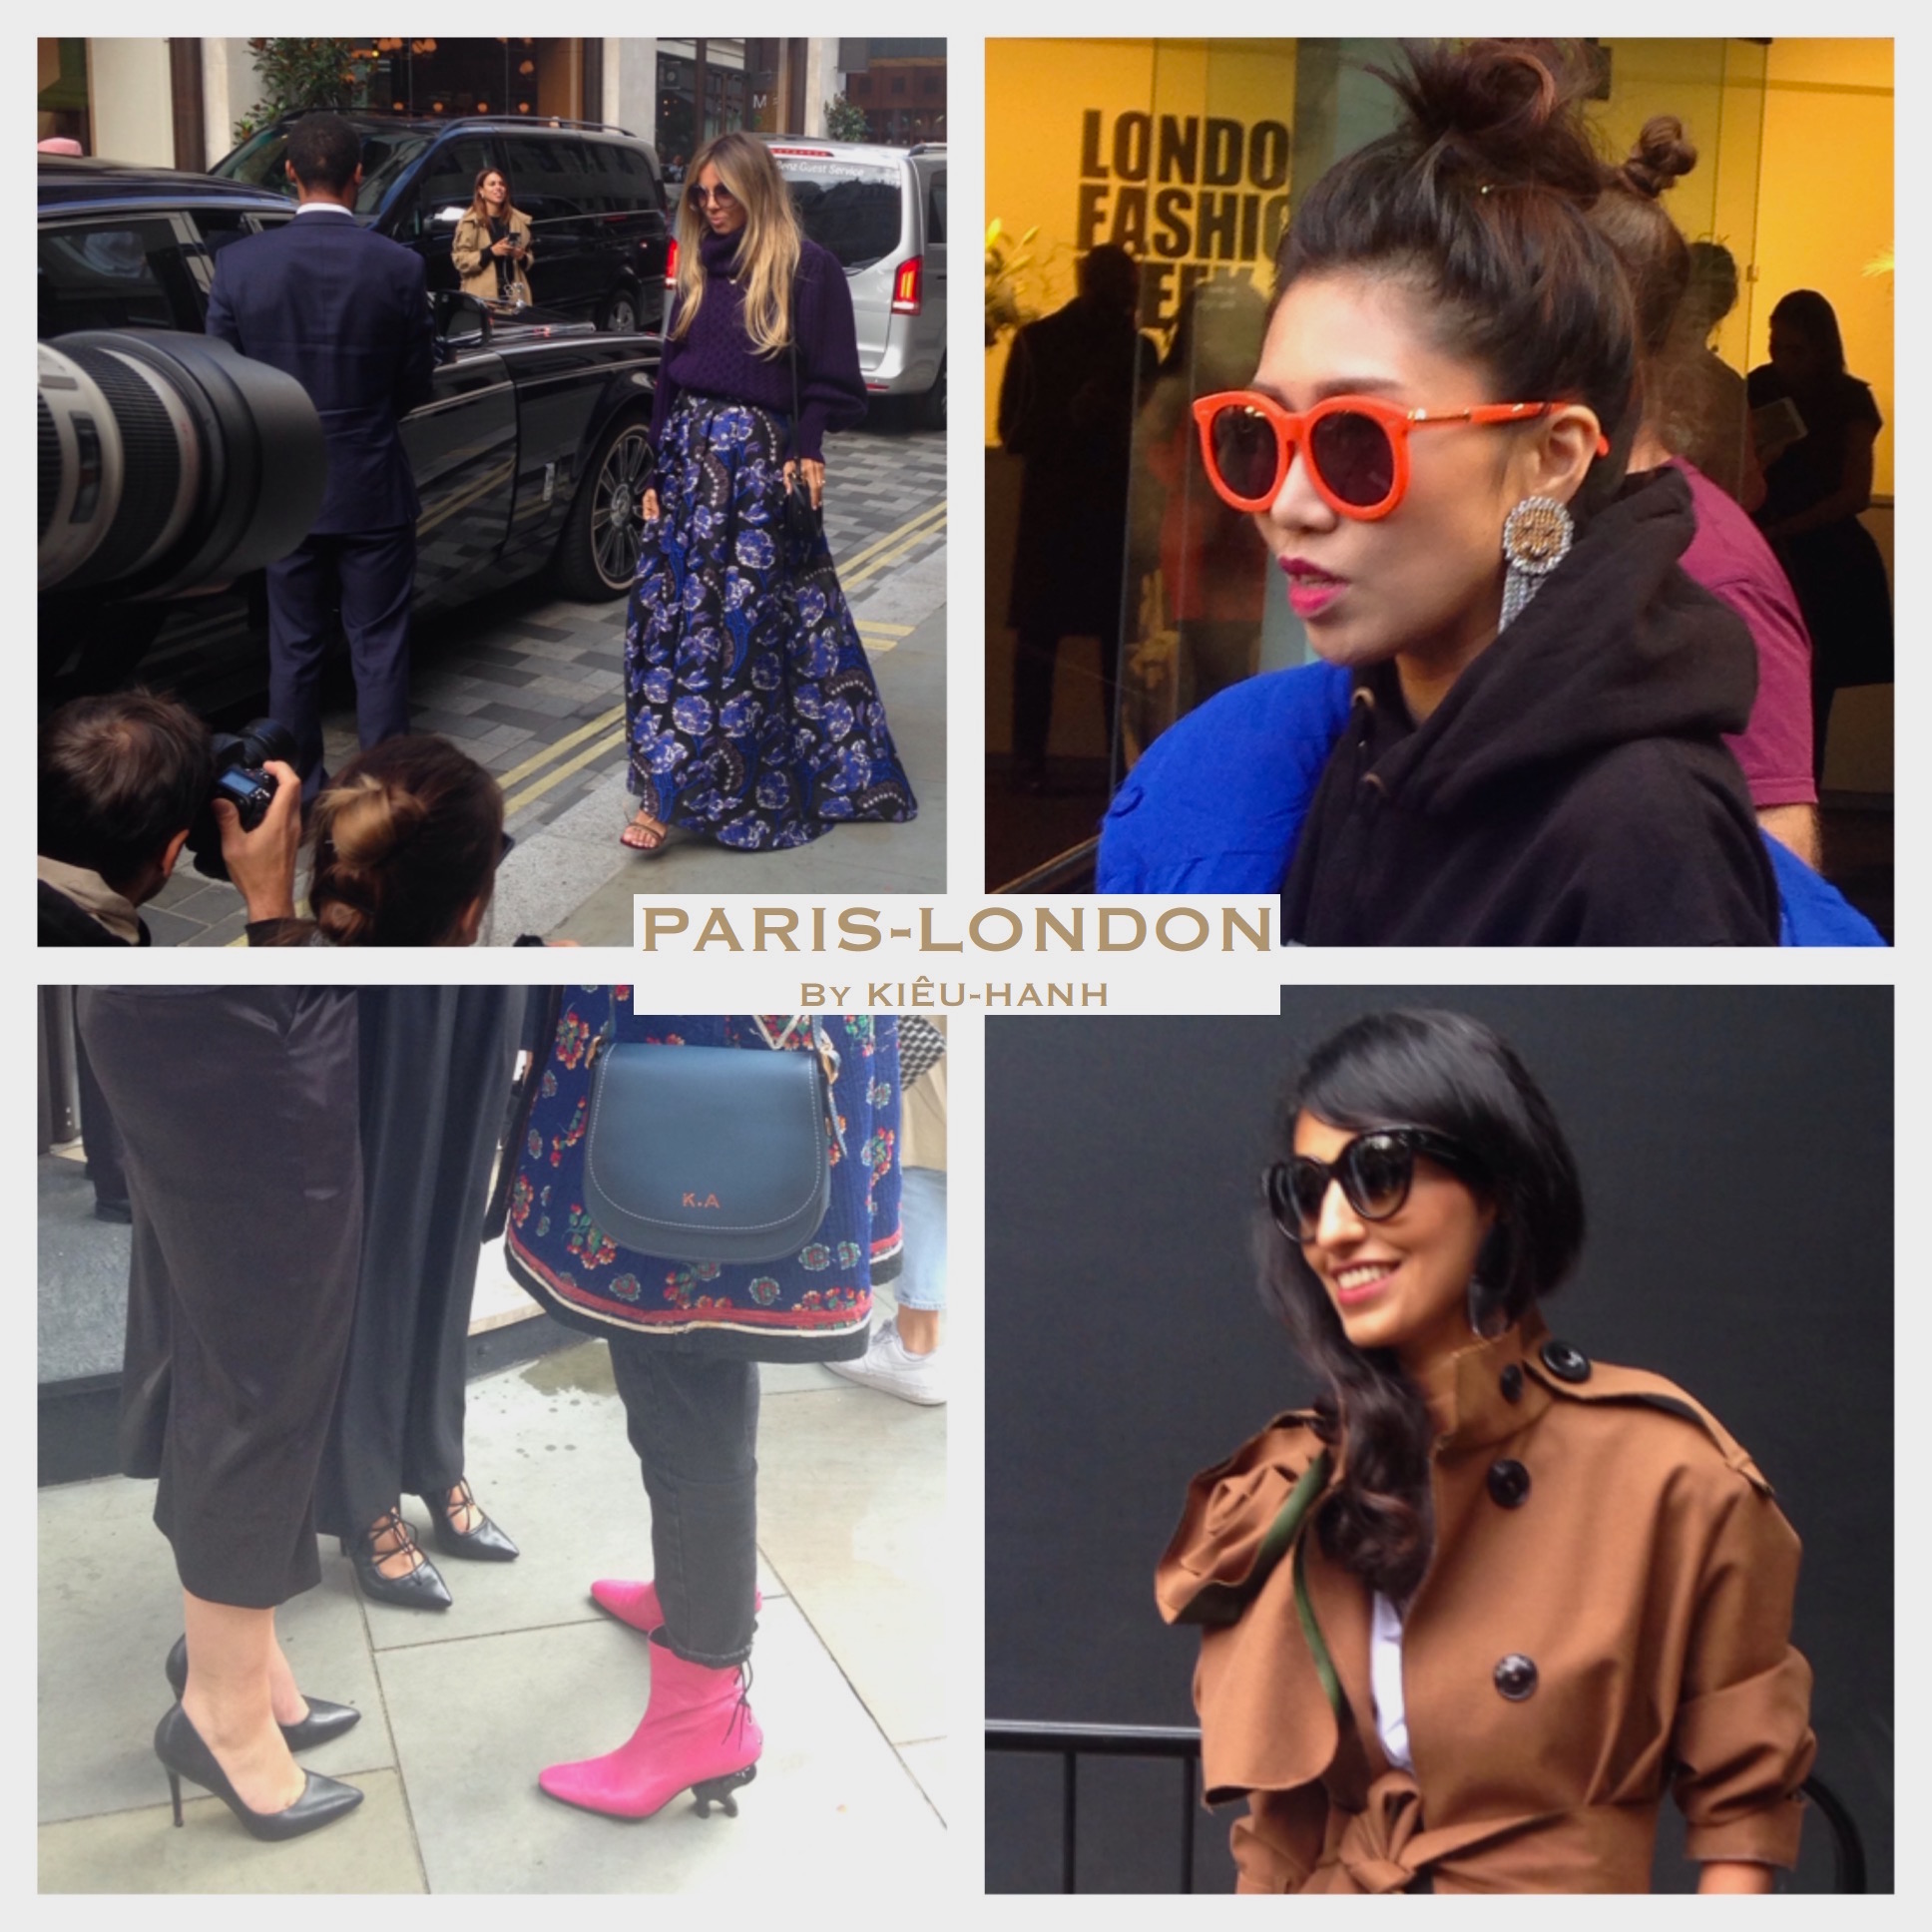 London Fashion Week (1). Paris-London By Kieu-Hanh.JPG